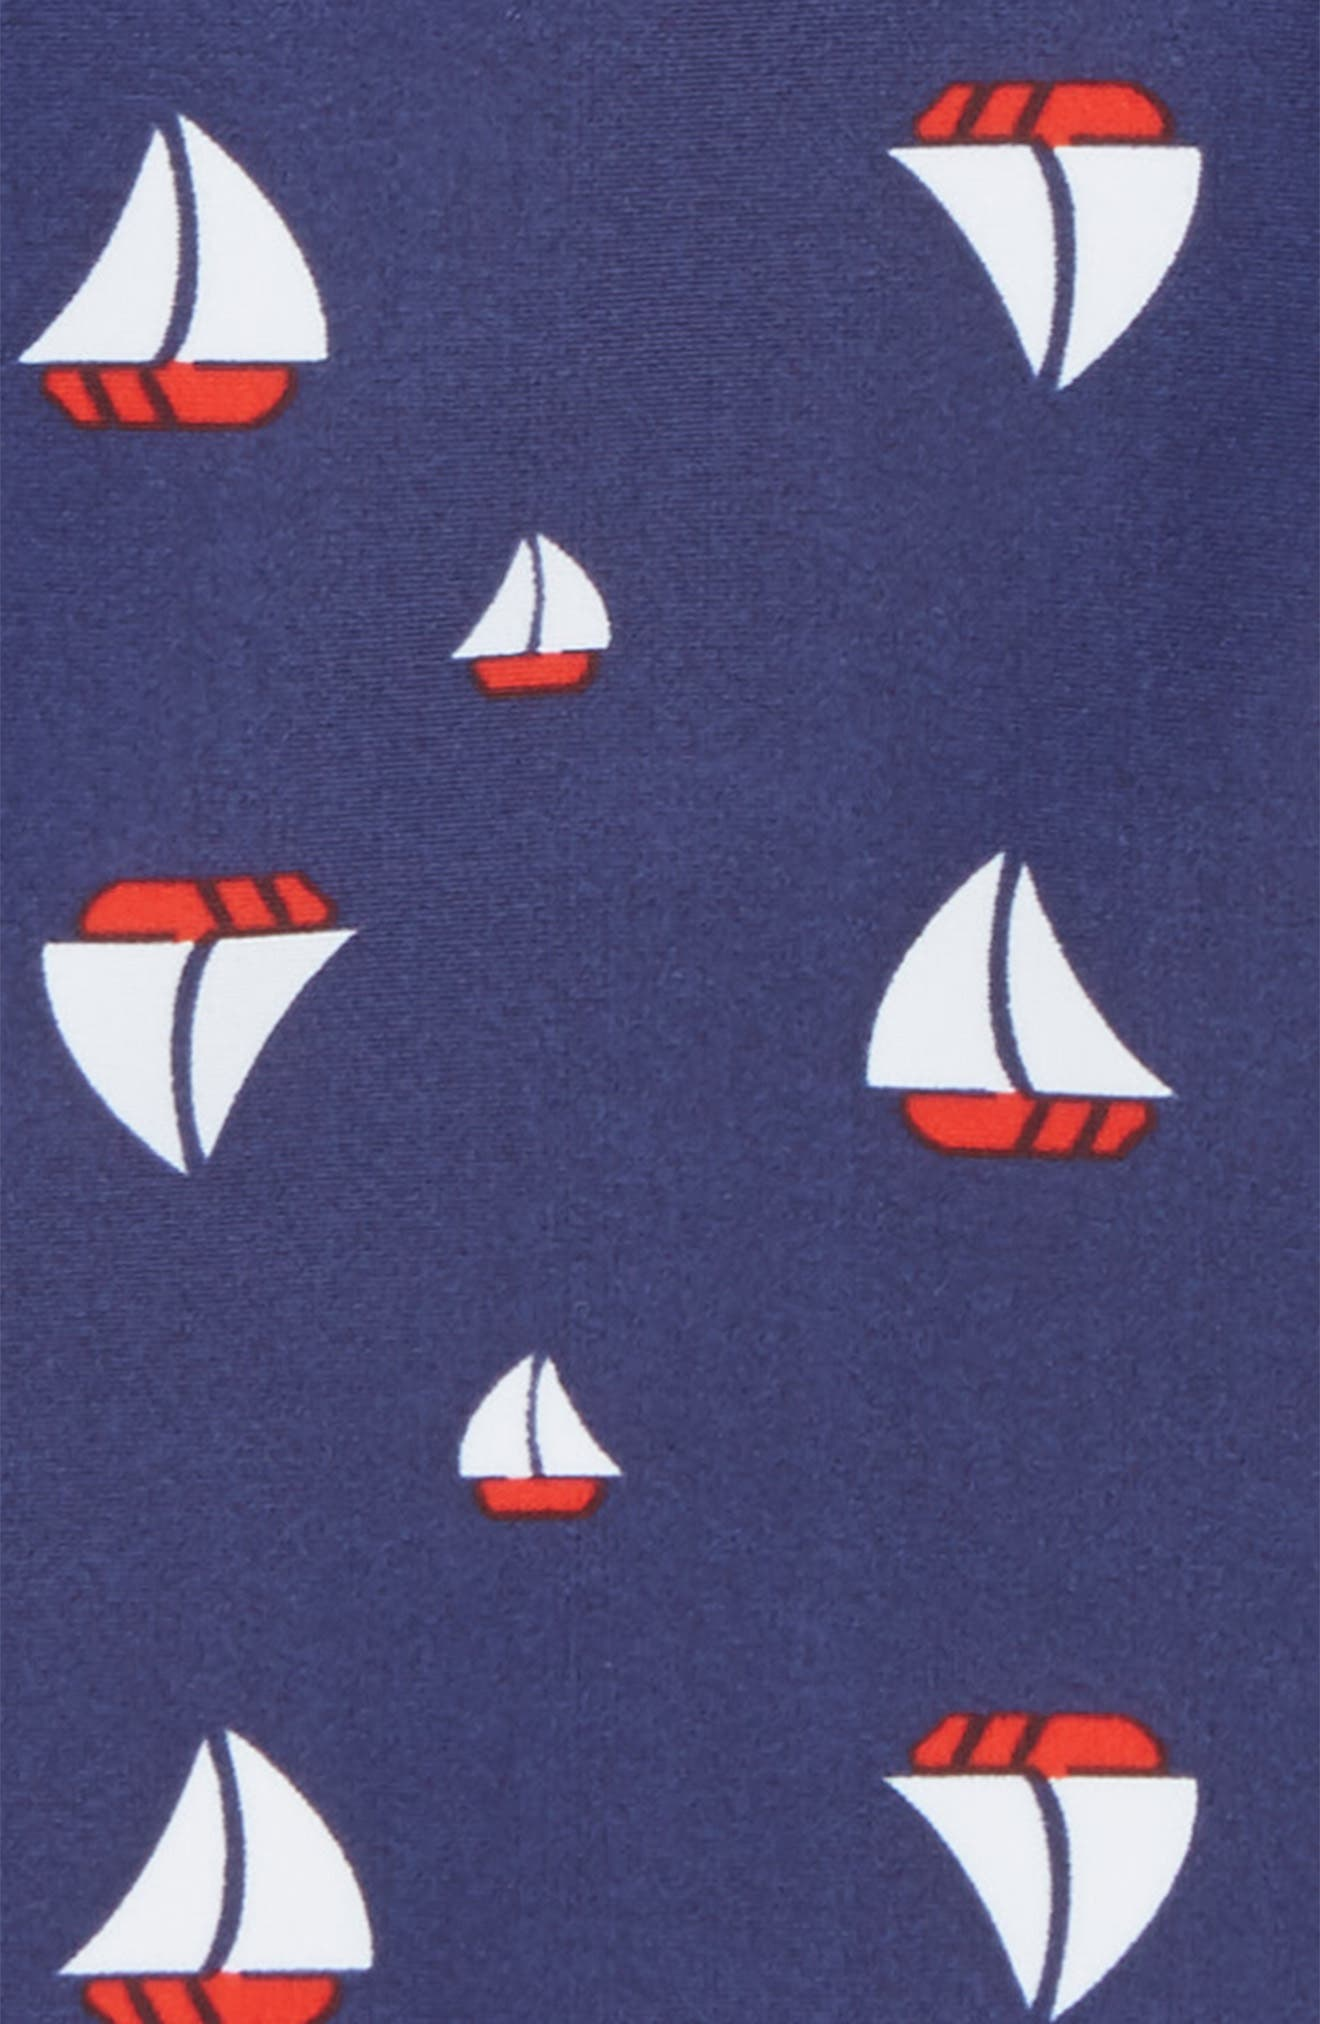 One-Piece Swimsuit,                             Alternate thumbnail 2, color,                             Navy Ribbon Sailboats